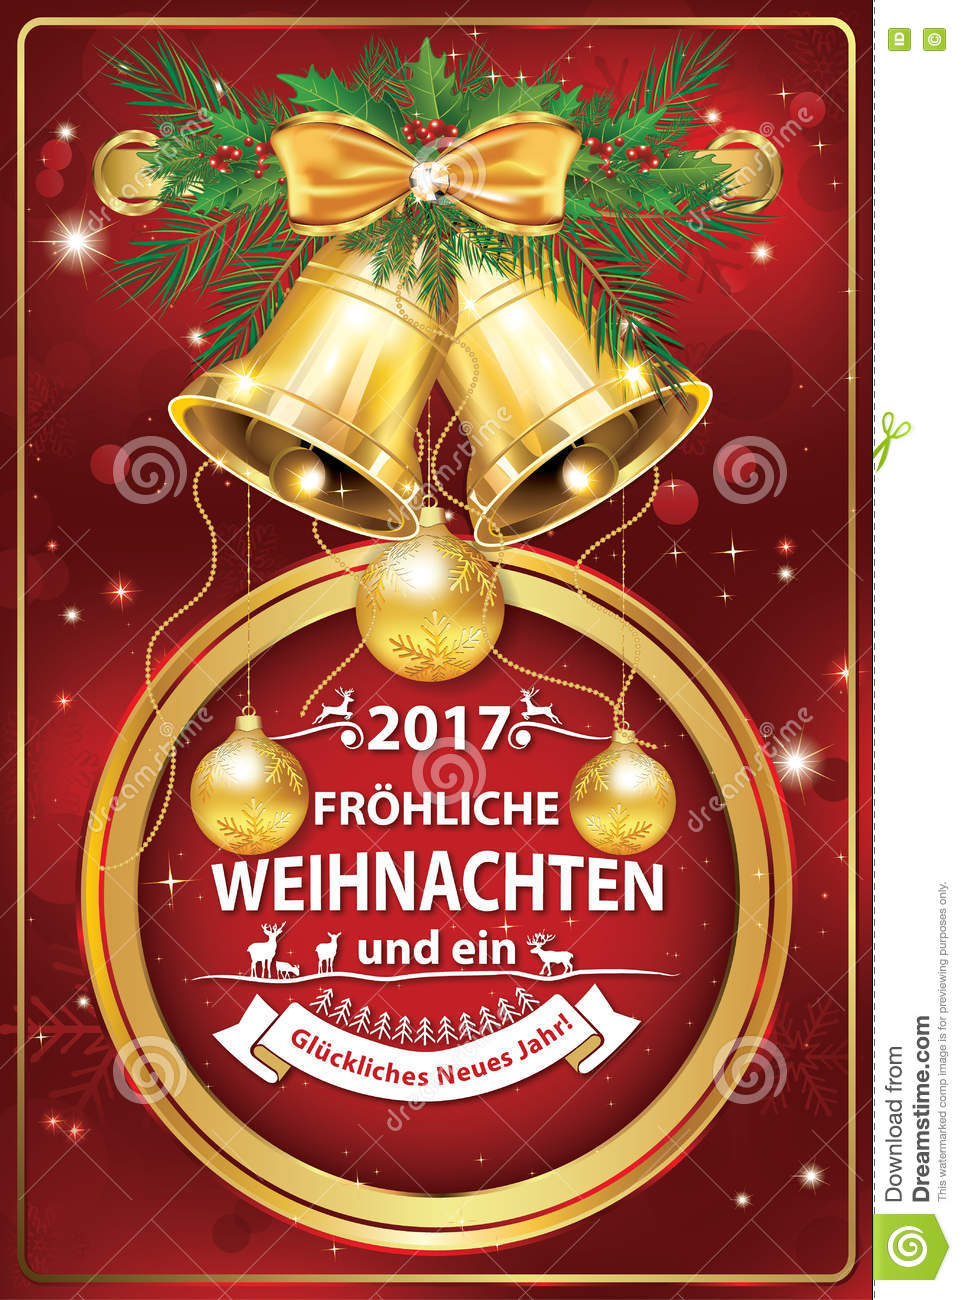 Elegant German Corporate Greeting Card For Winter Holiday ...